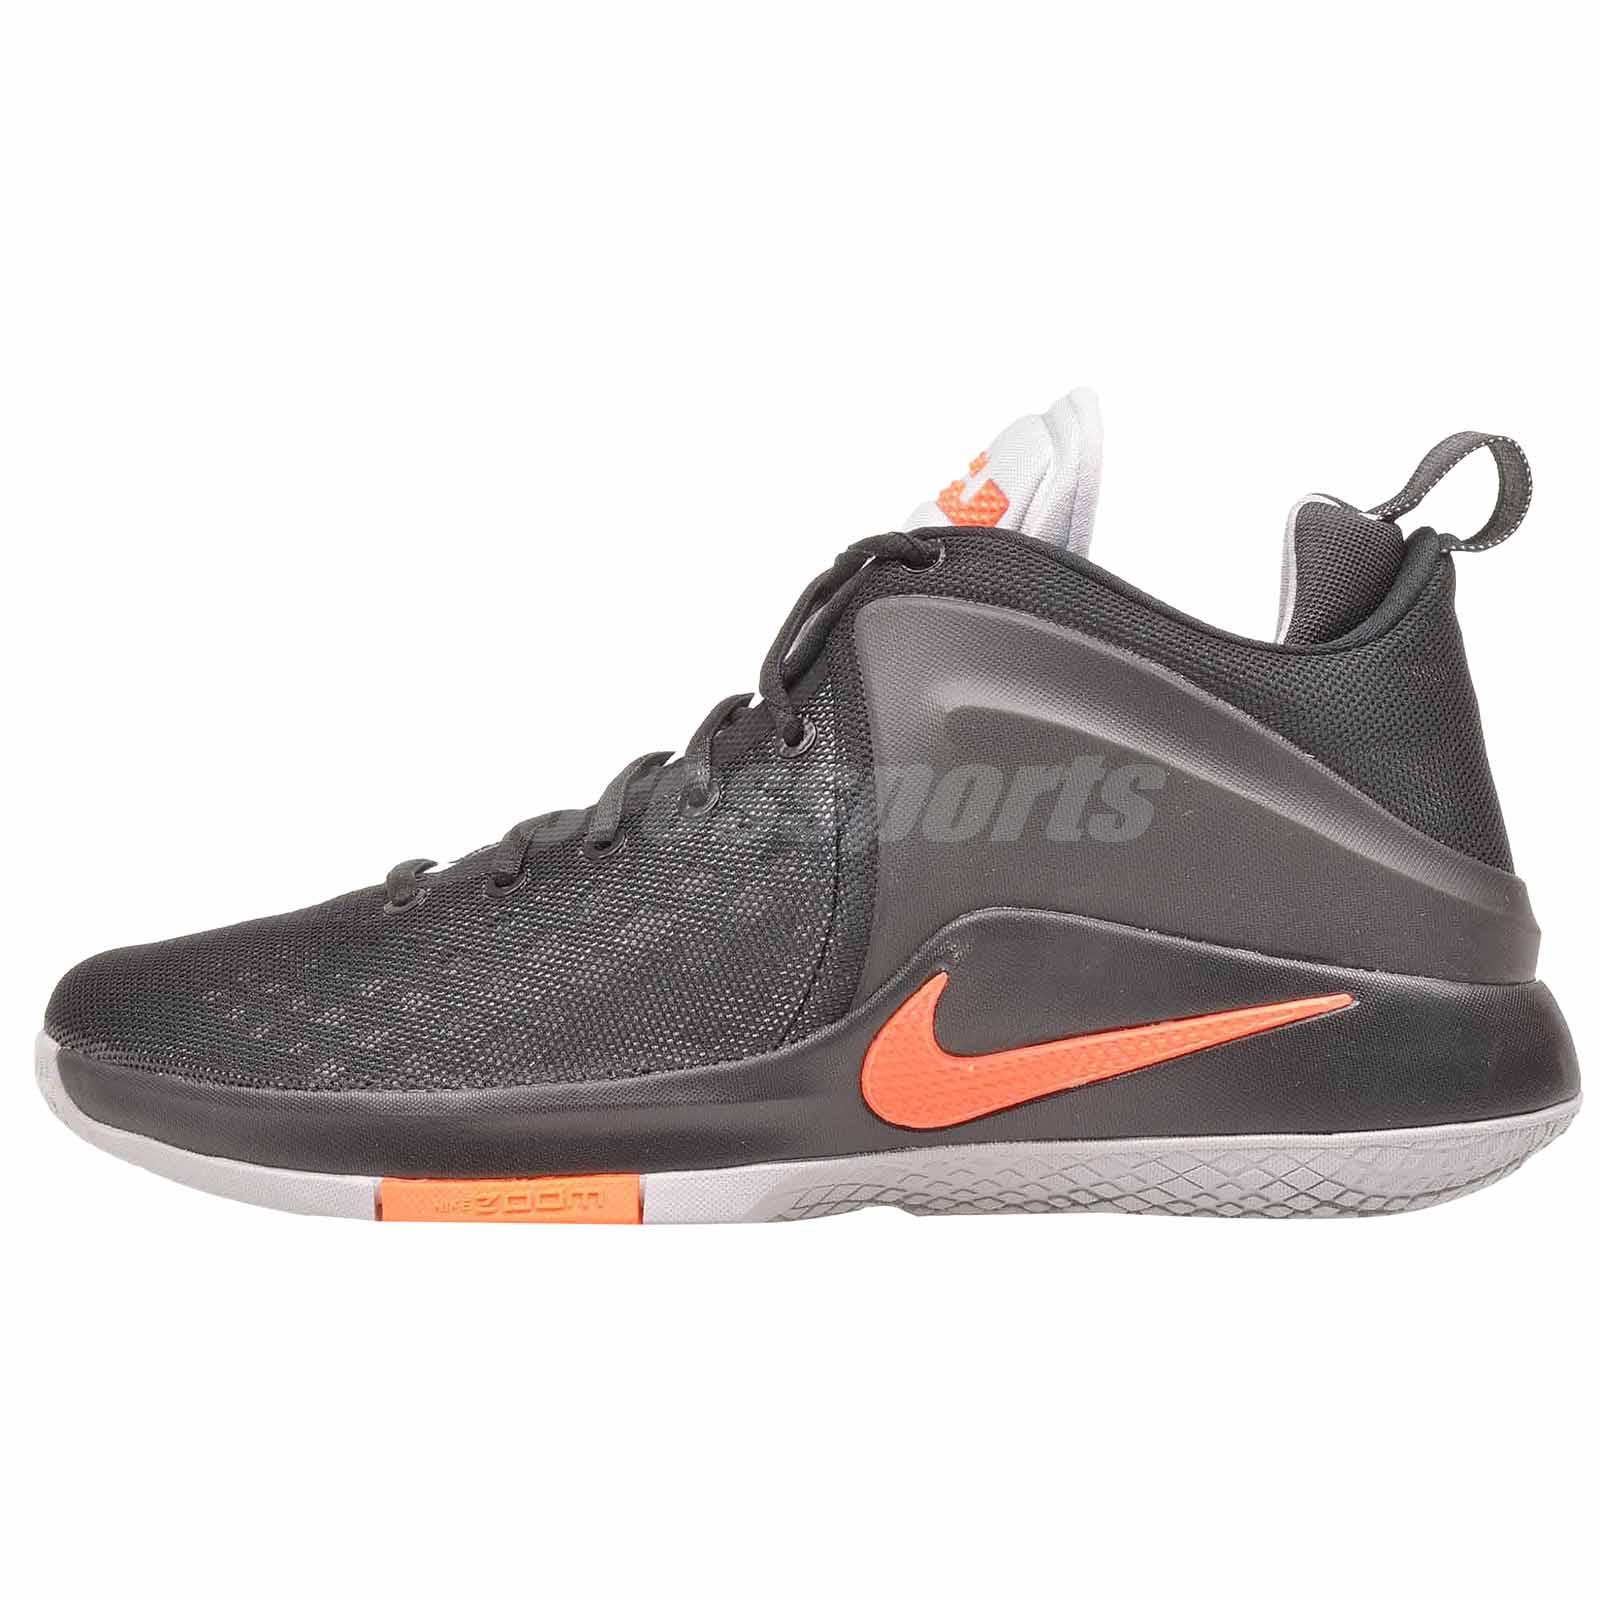 4a13bdfc5fb8 Nike Zoom Witness Basketball Mens Shoes Black Grey 852439-006